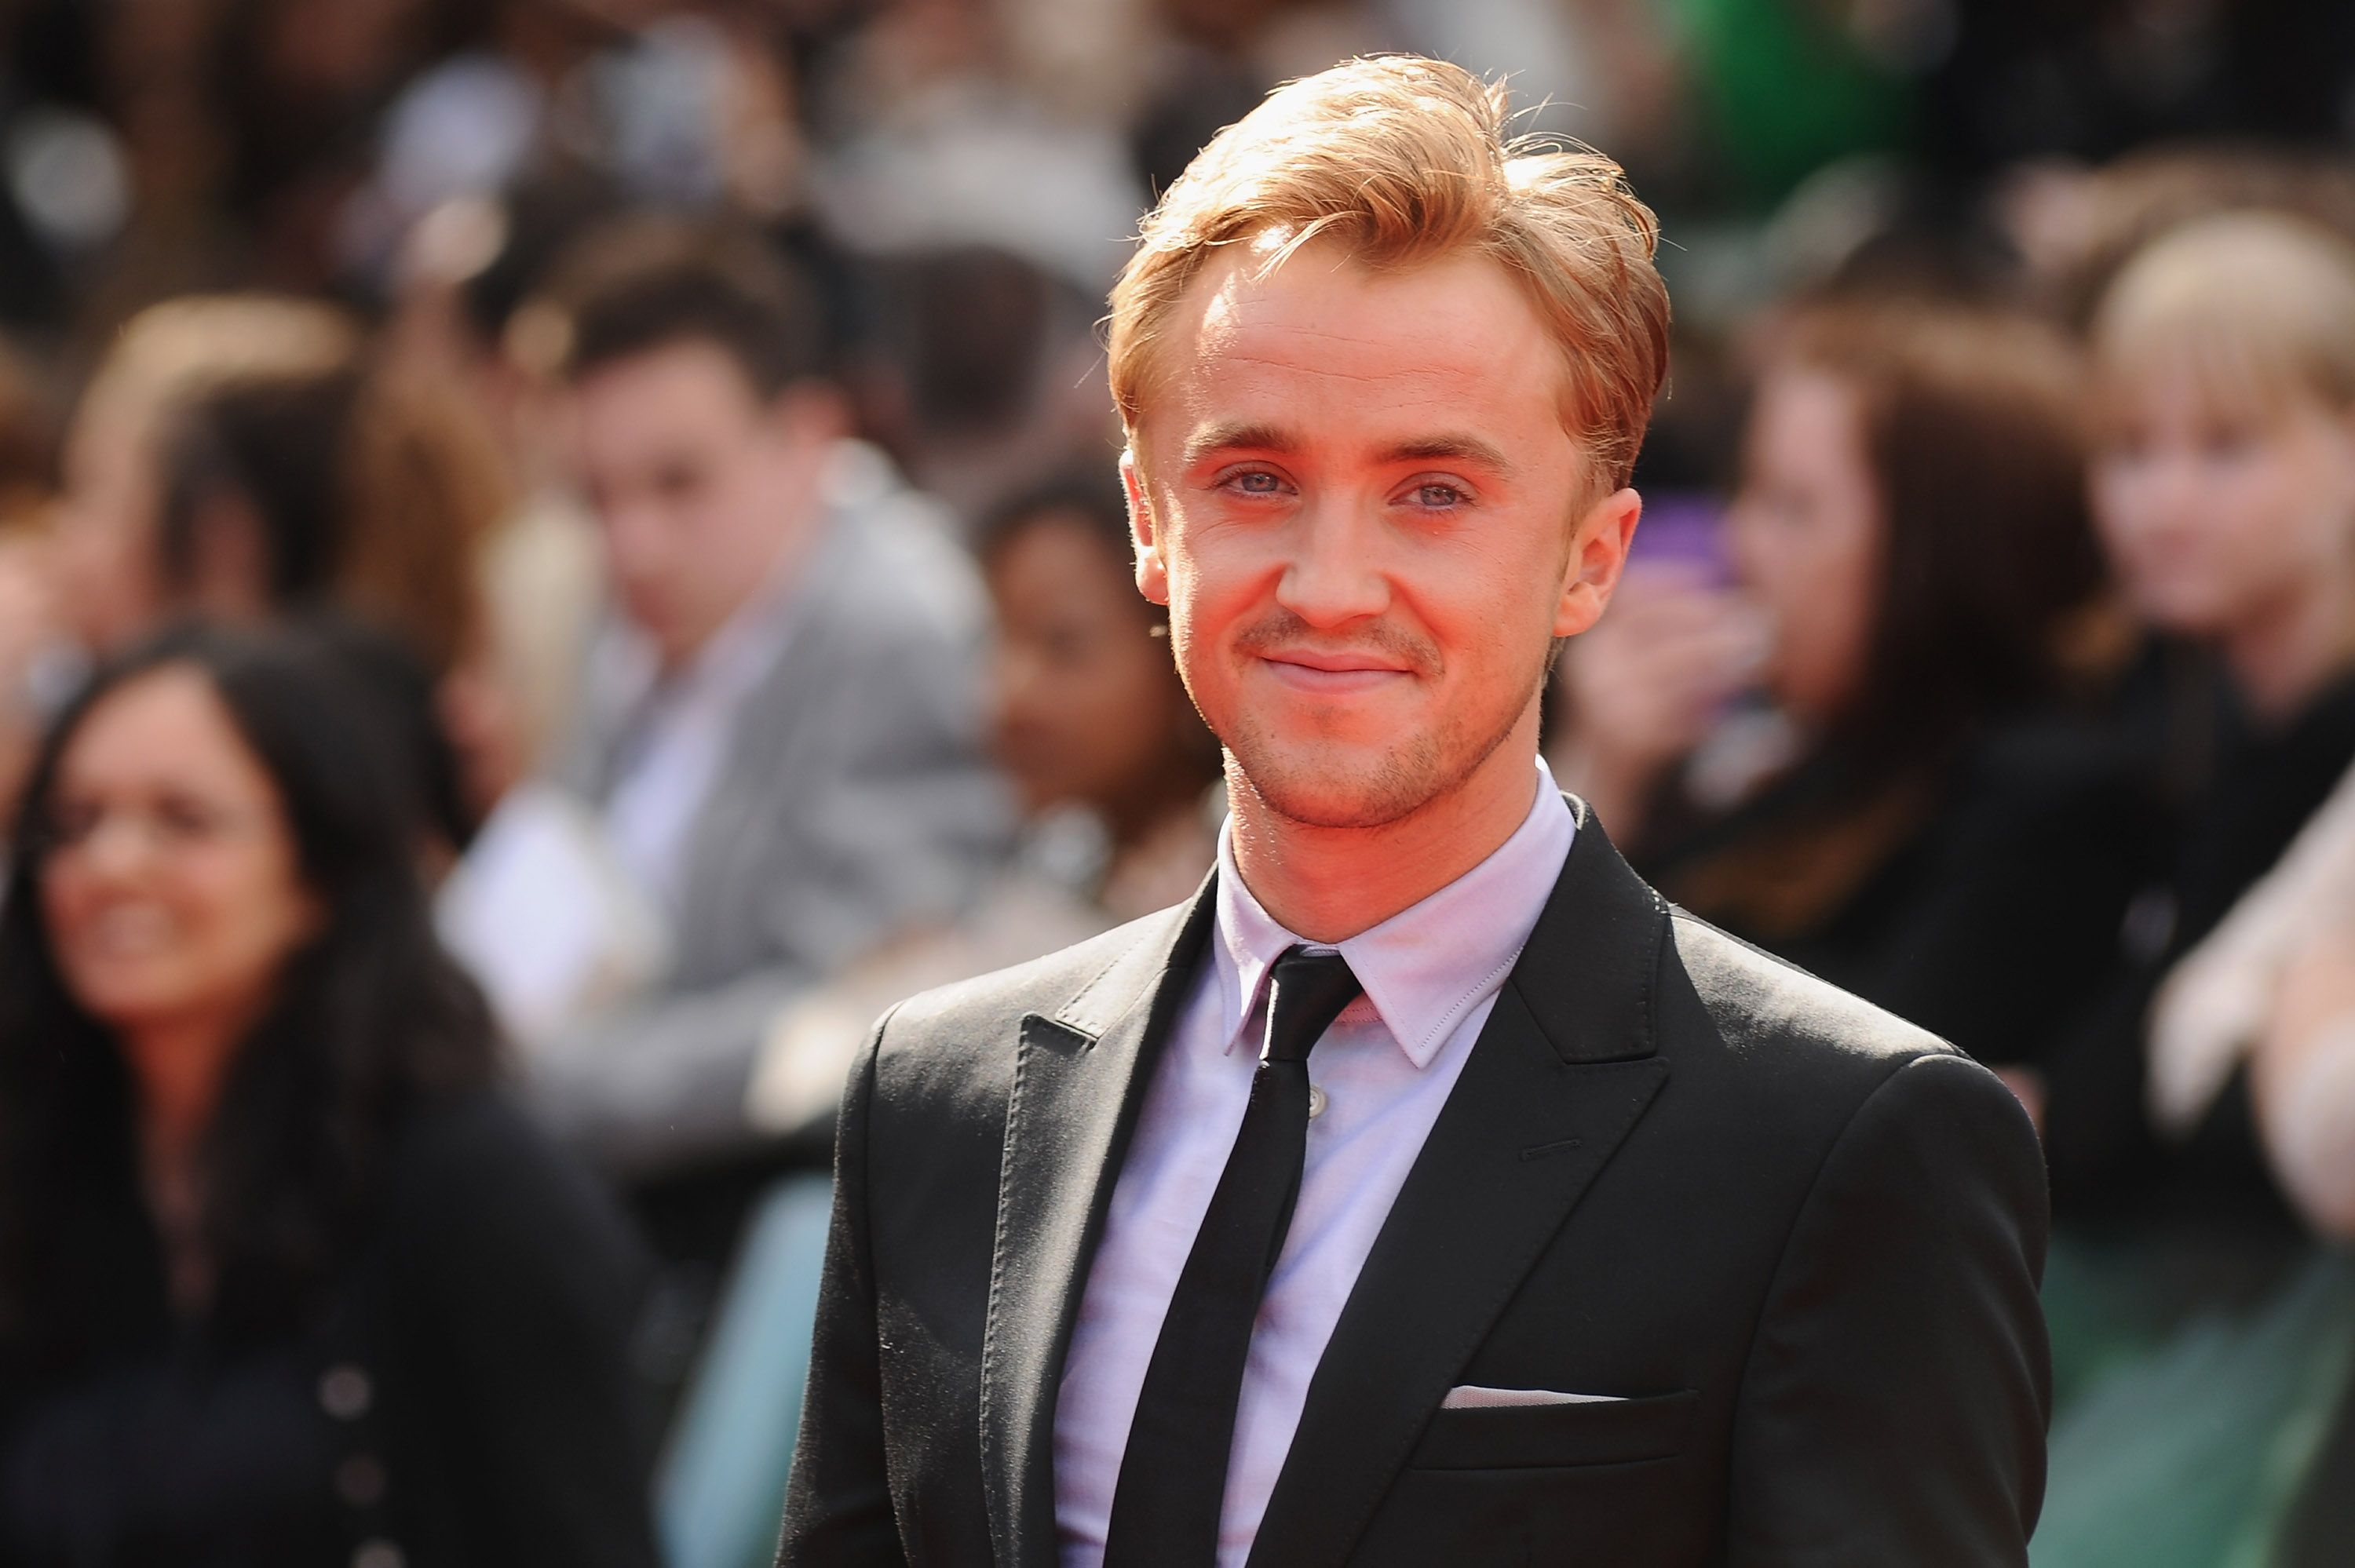 Tom Felton attends the World Premiere of Harry Potter and The Deathly Hallows - Part 2 / Photo:Getty Images